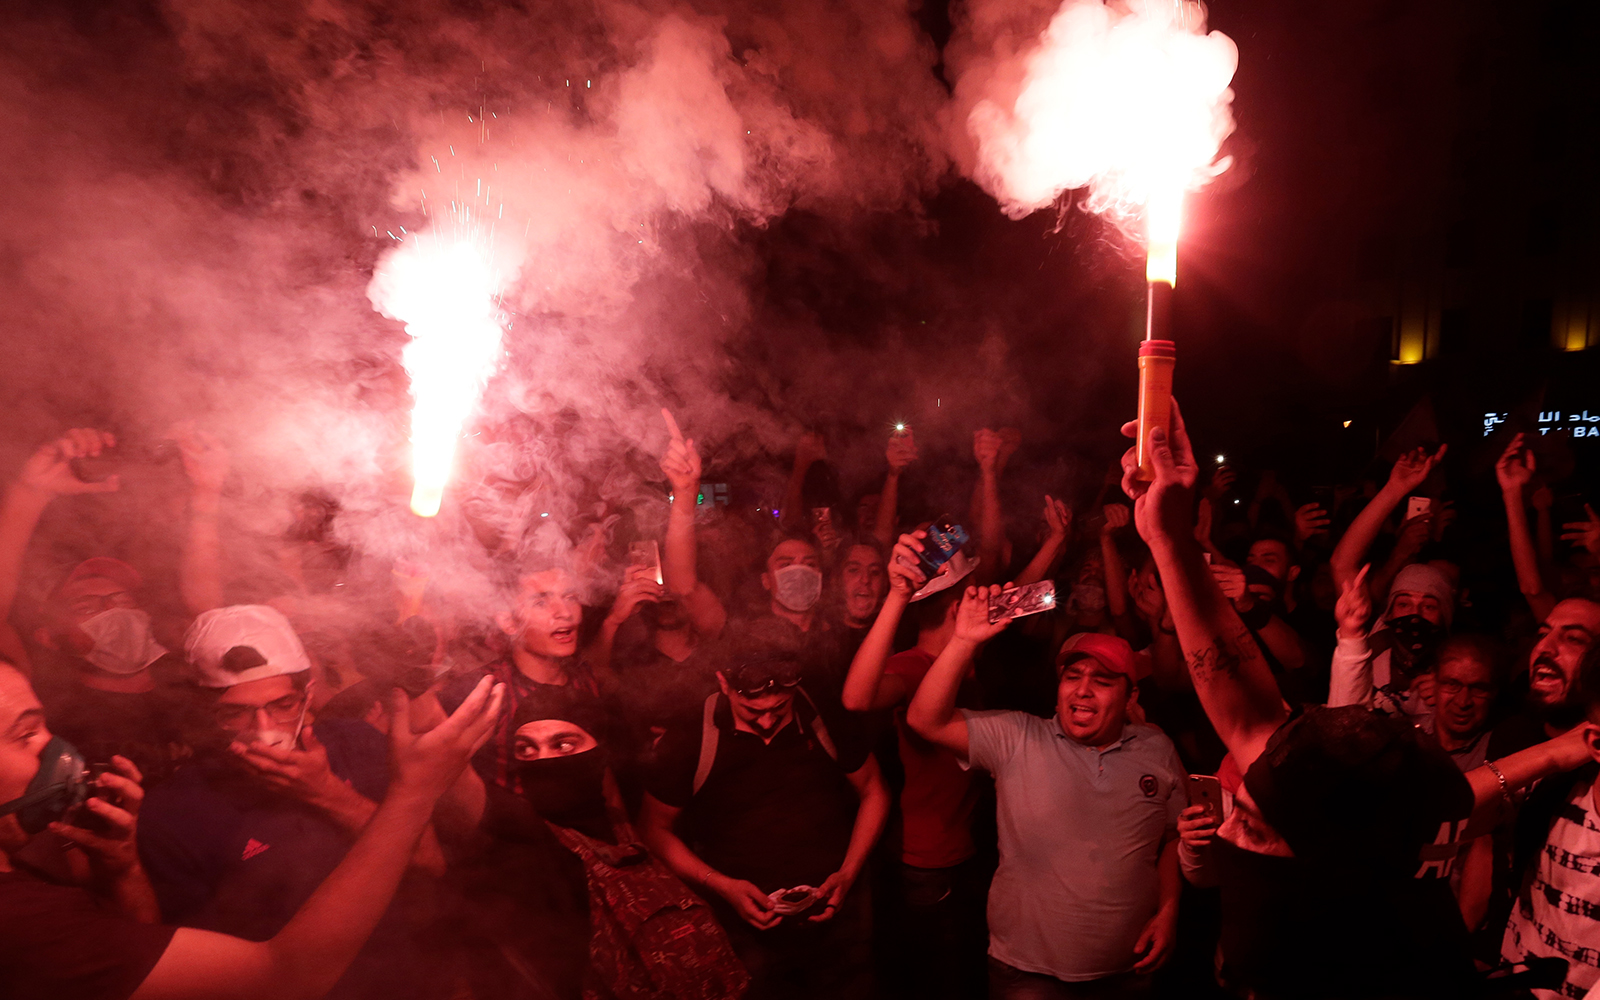 Unprecedented anti-government protests swell across Lebanon